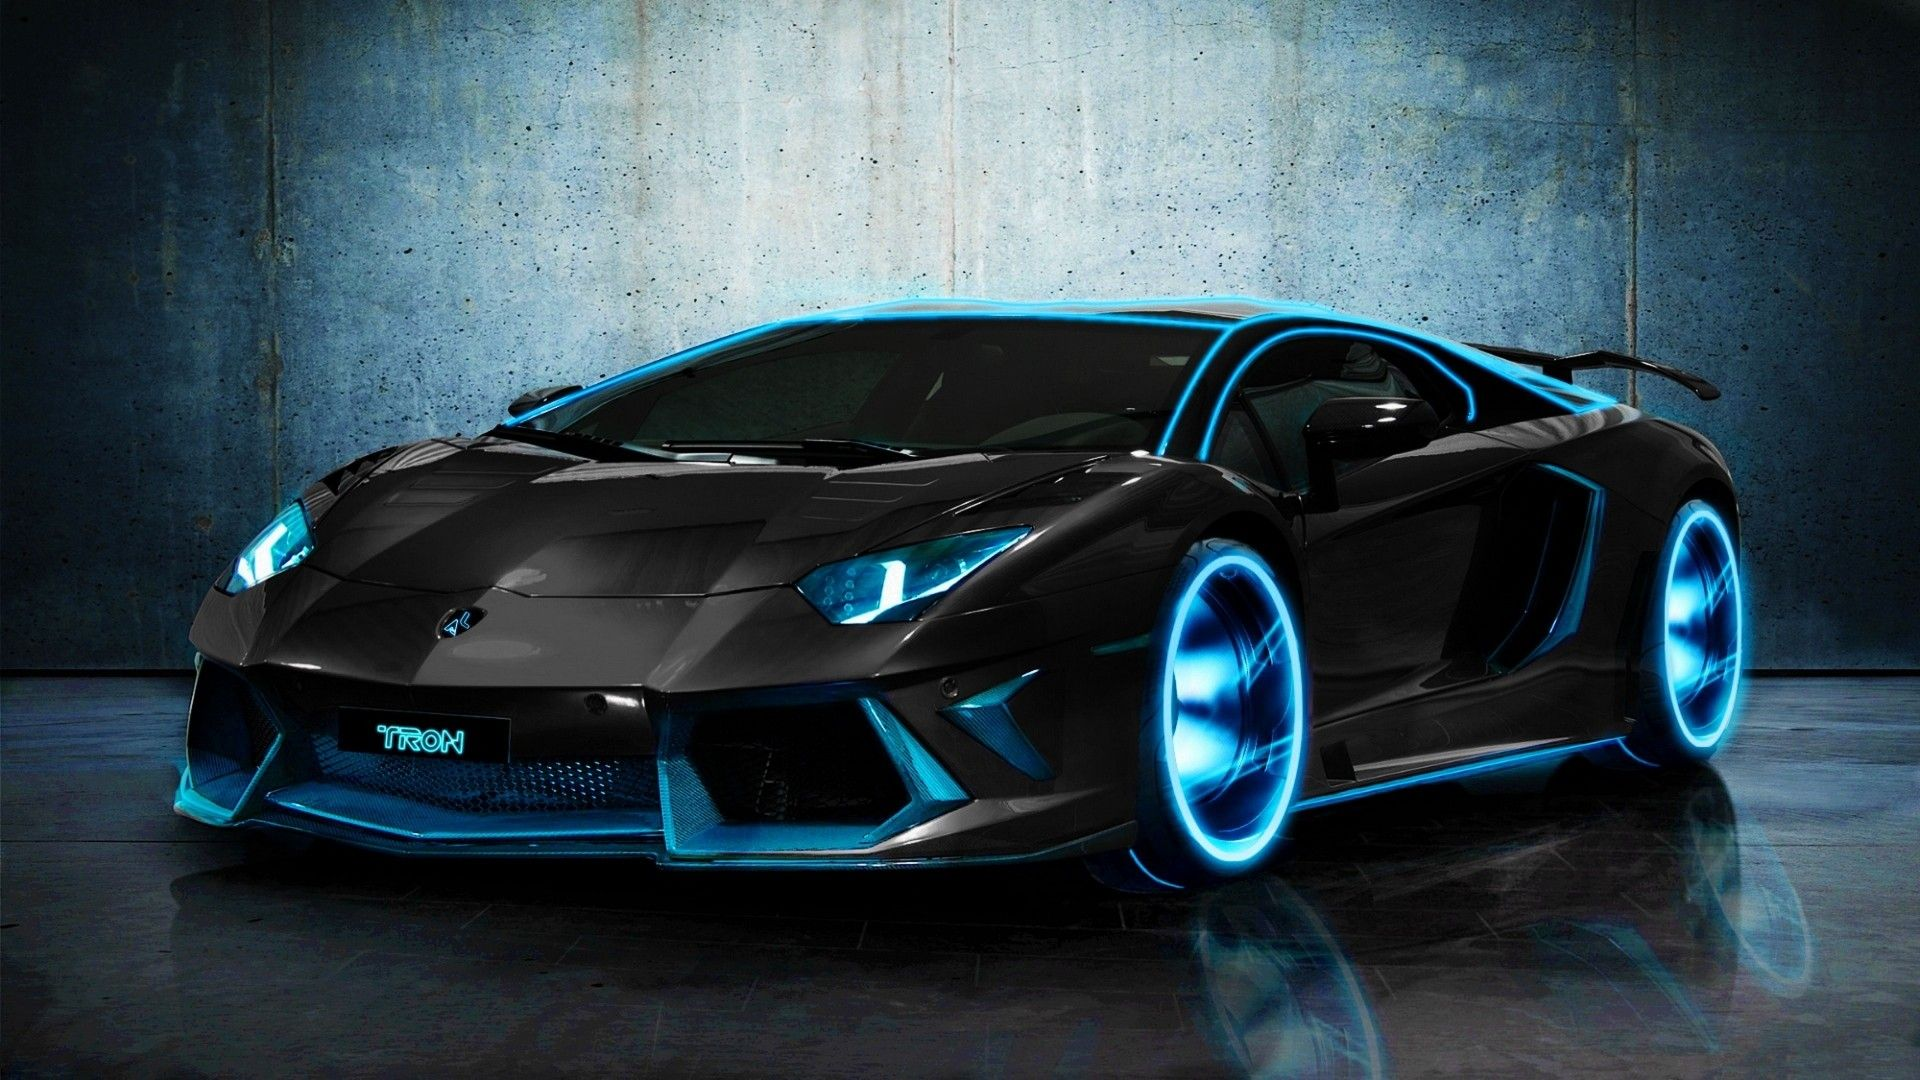 hd wallpaper lamborghini aventador black http69hdwallpaperscomhd